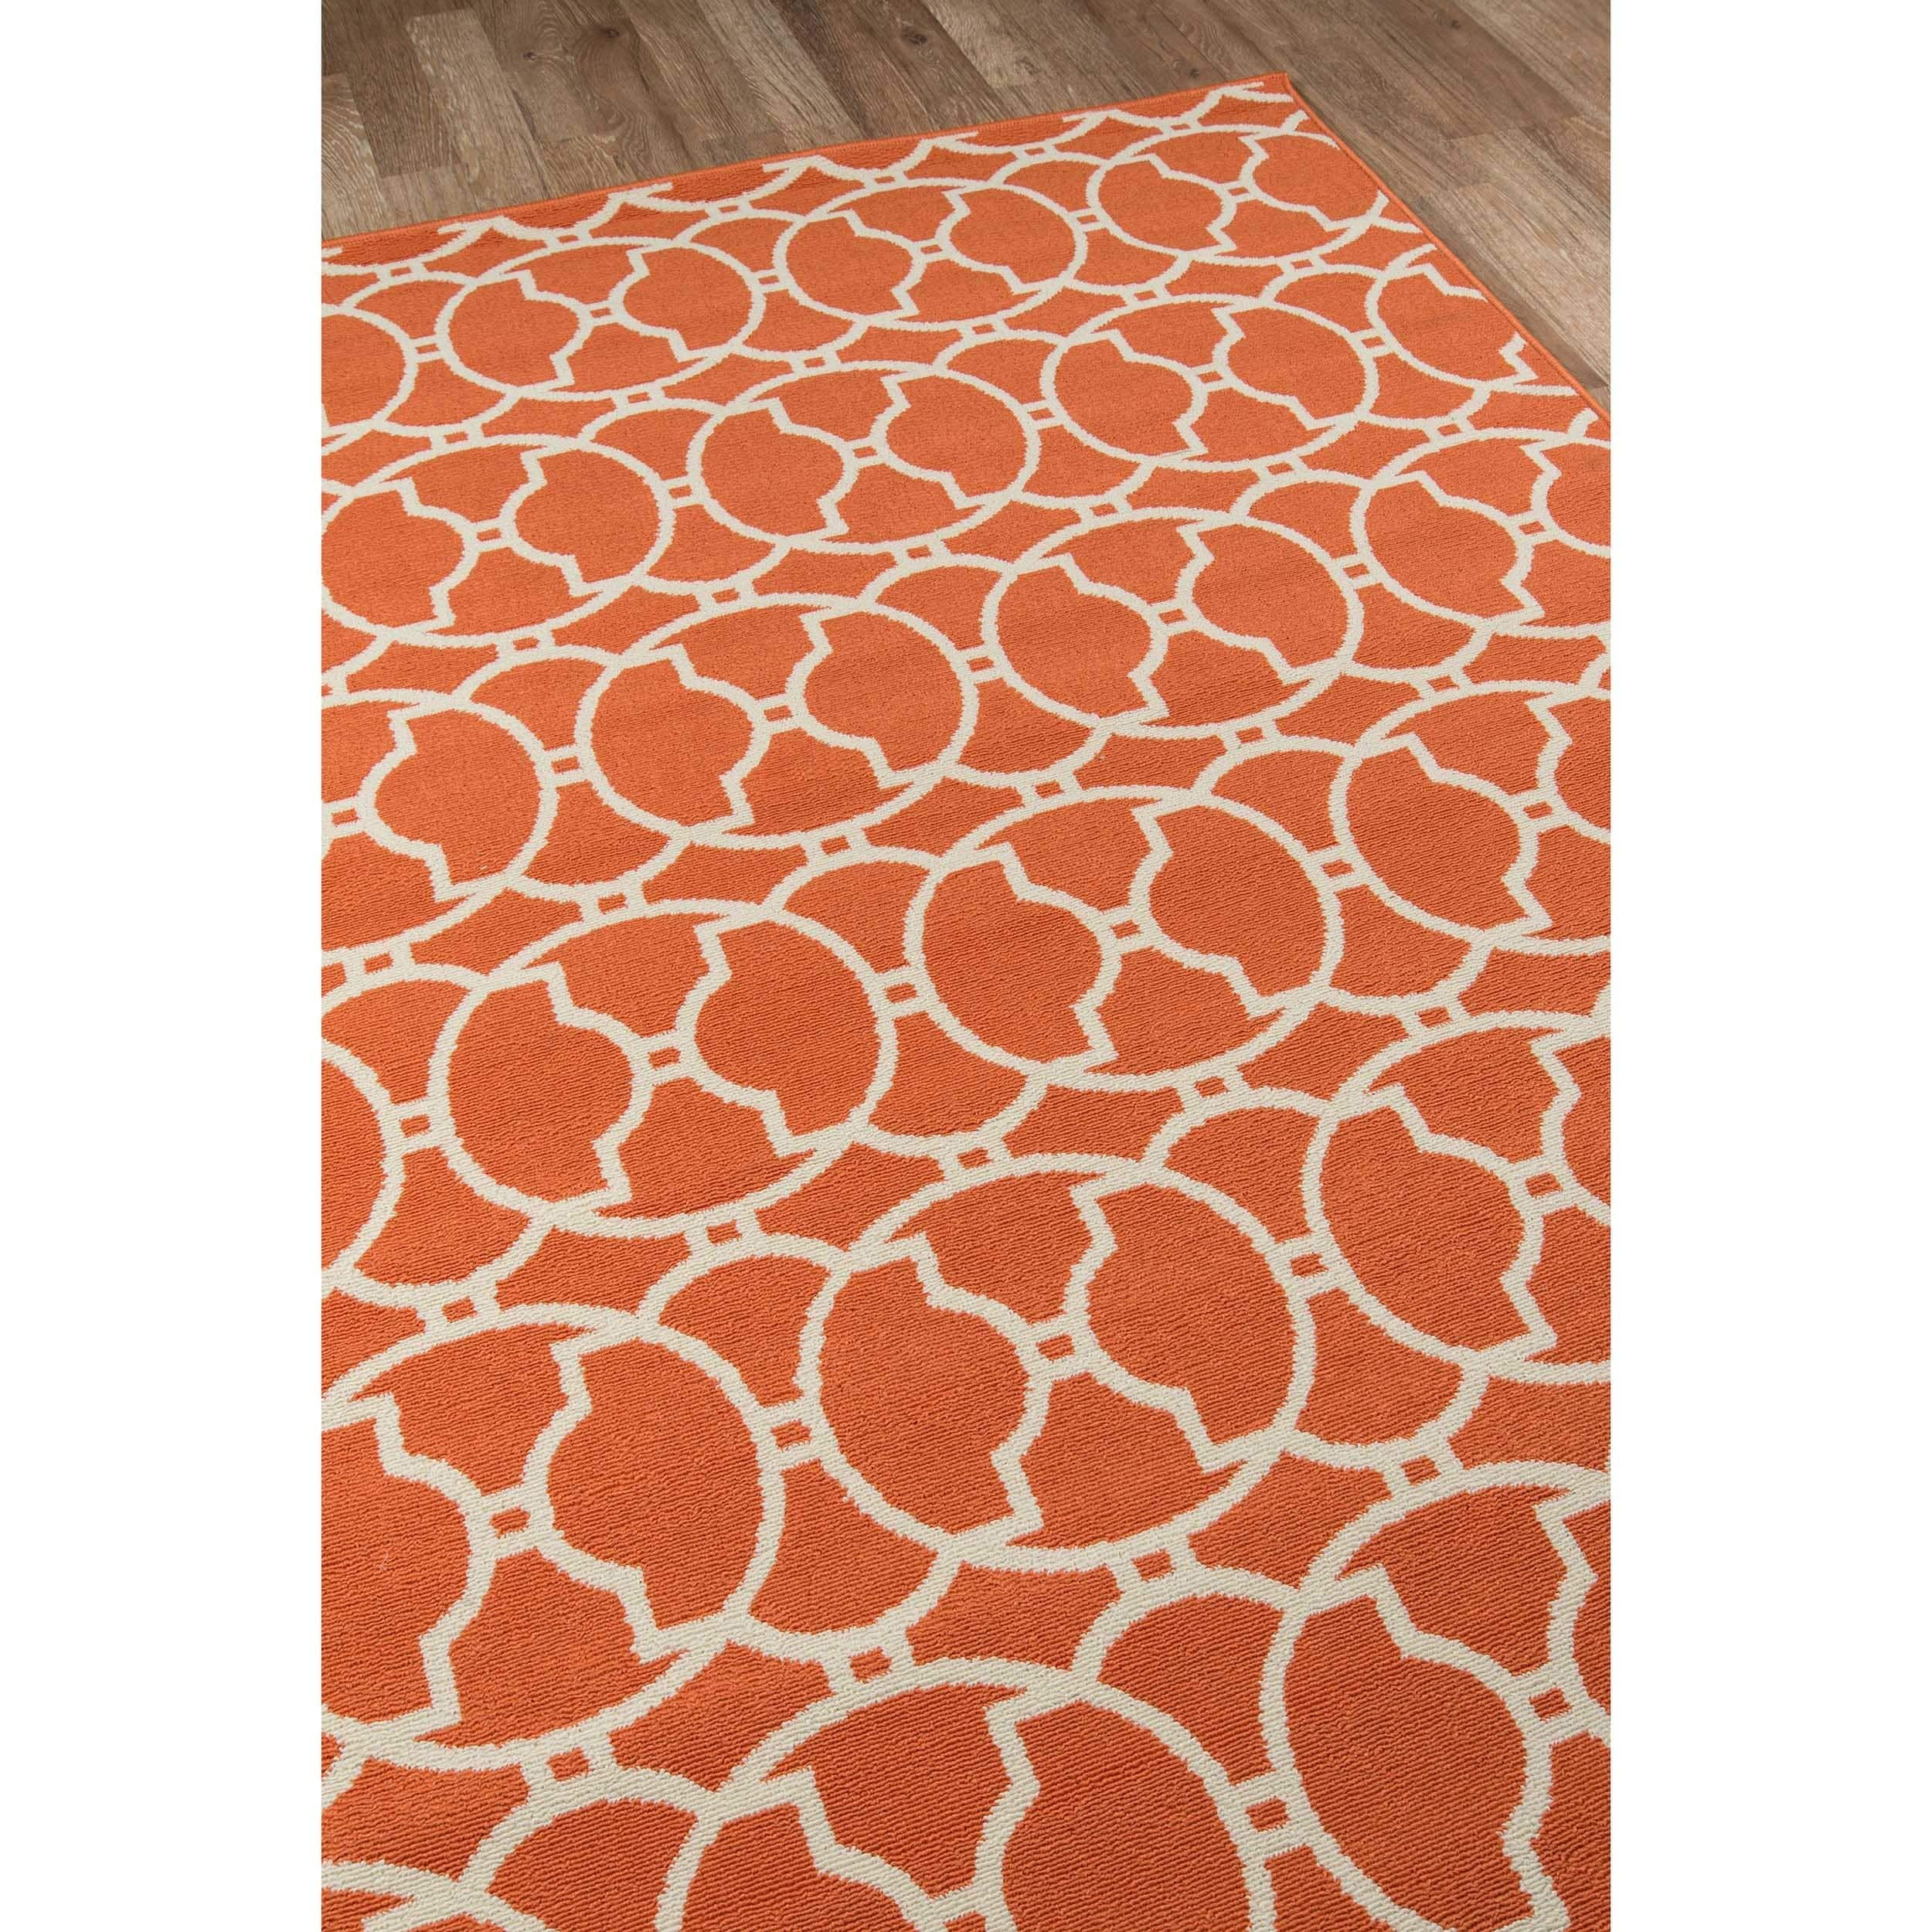 Momeni Baja Moroccan Tile Orange Indoor Outdoor Area Rug 6 7 x 9